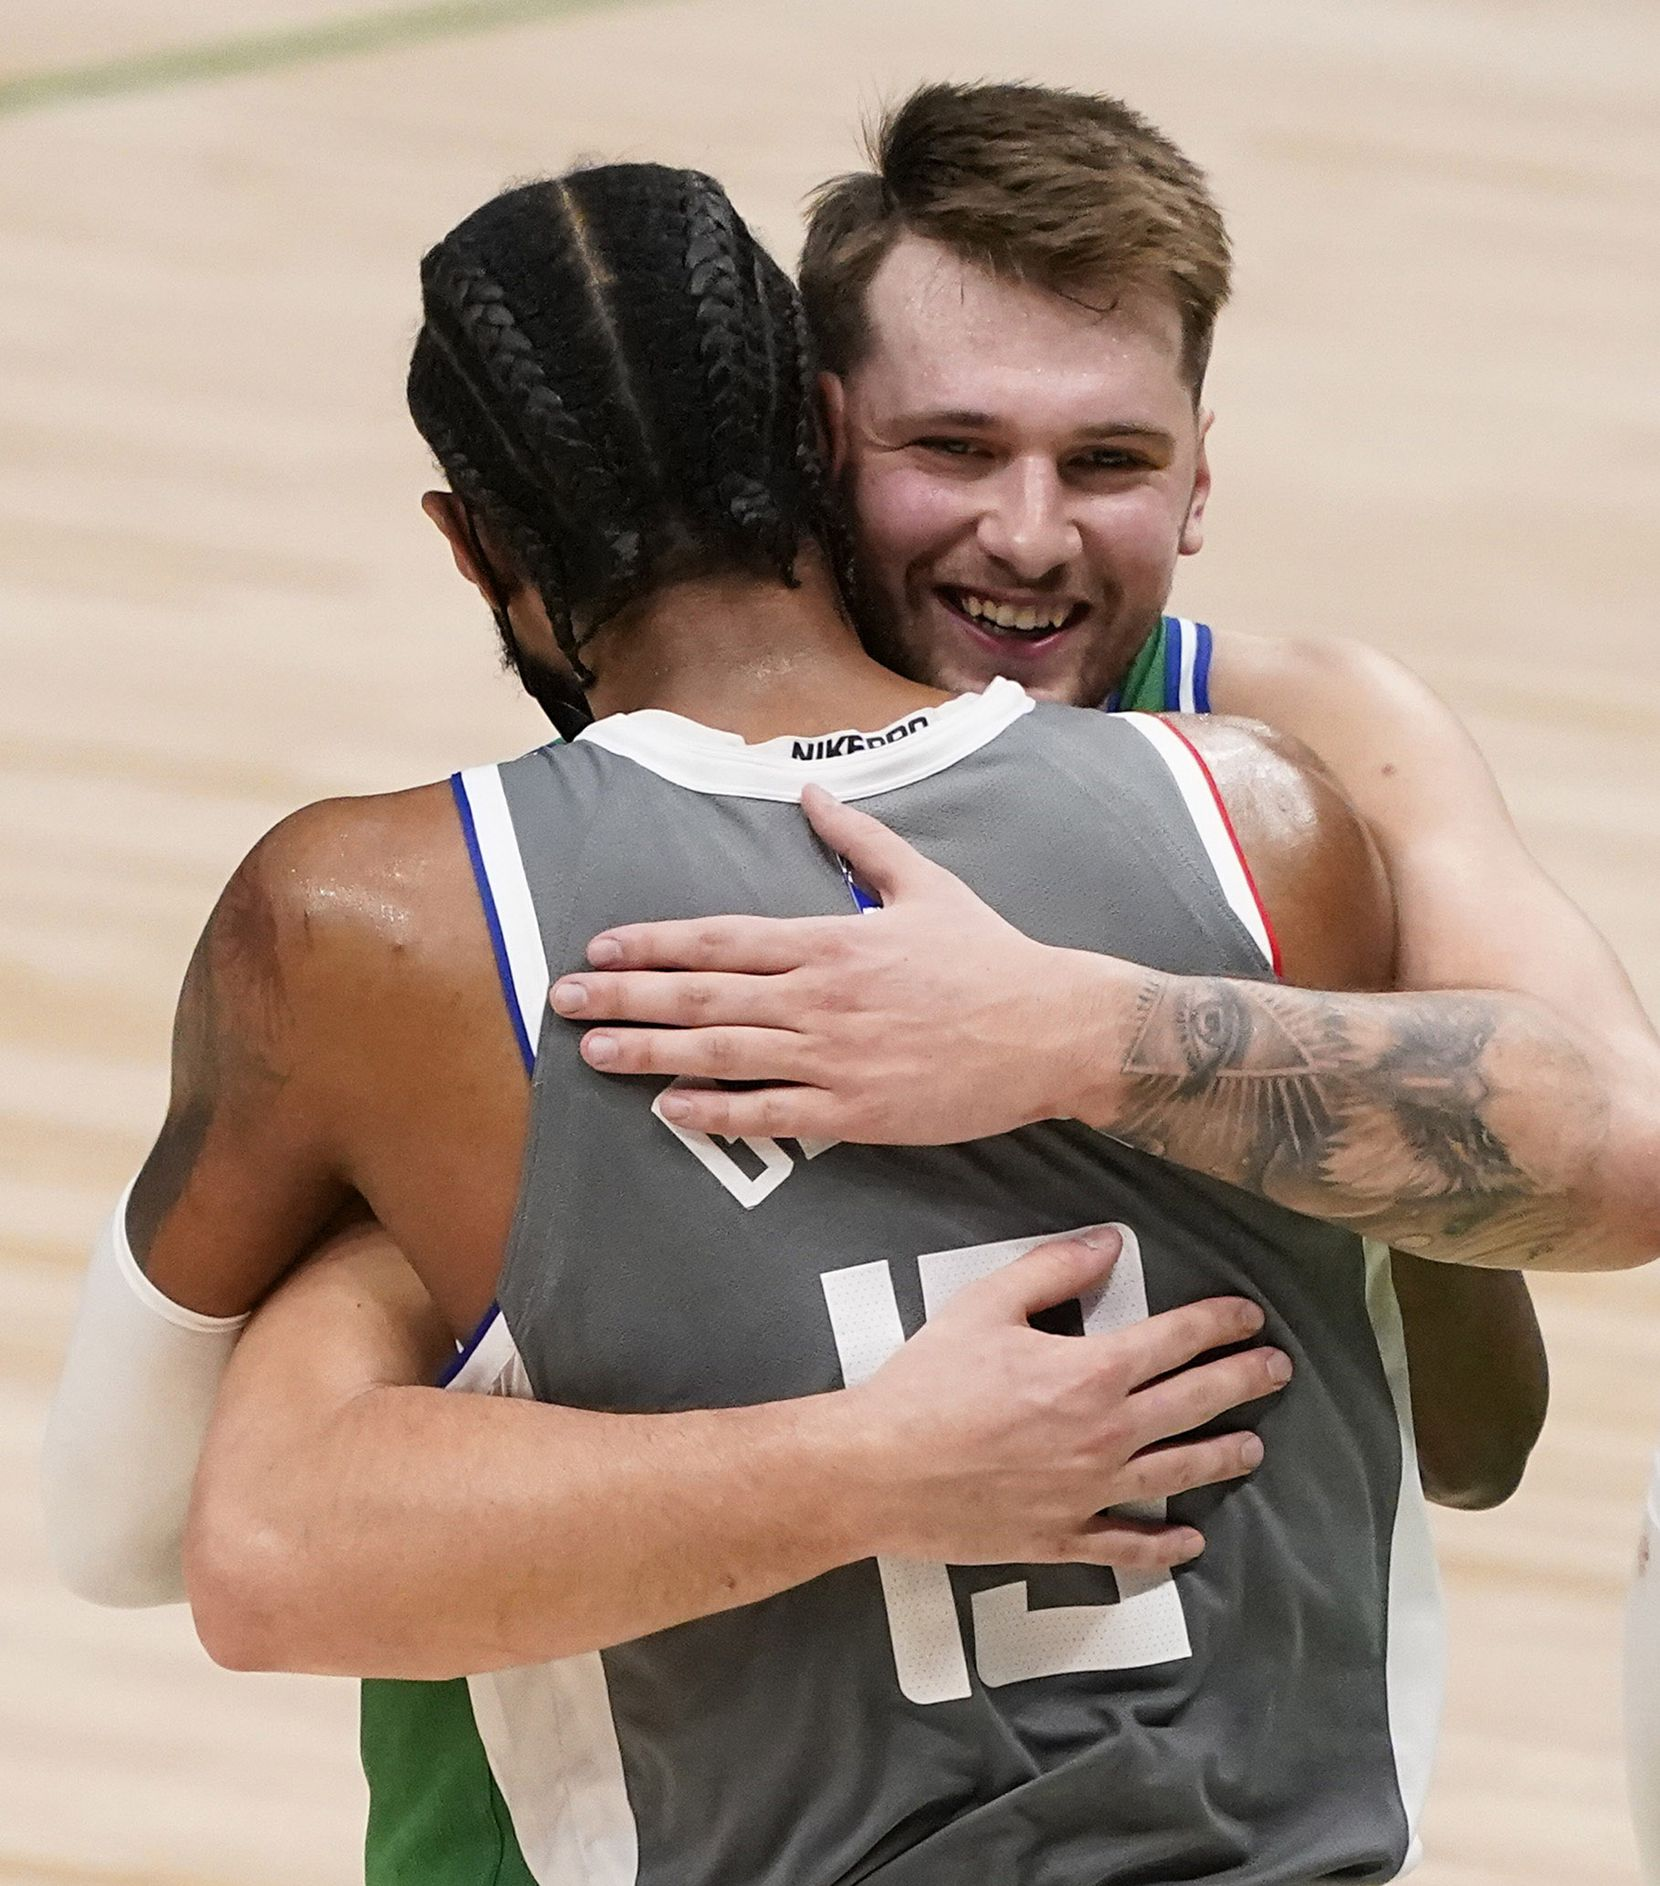 Dallas Mavericks guard Luka Doncic hugs LA Clippers guard Paul George after the Mavericks 105-89 victory in an NBA basketball game at American Airlines Center on Wednesday, March 17, 2021, in Dallas.